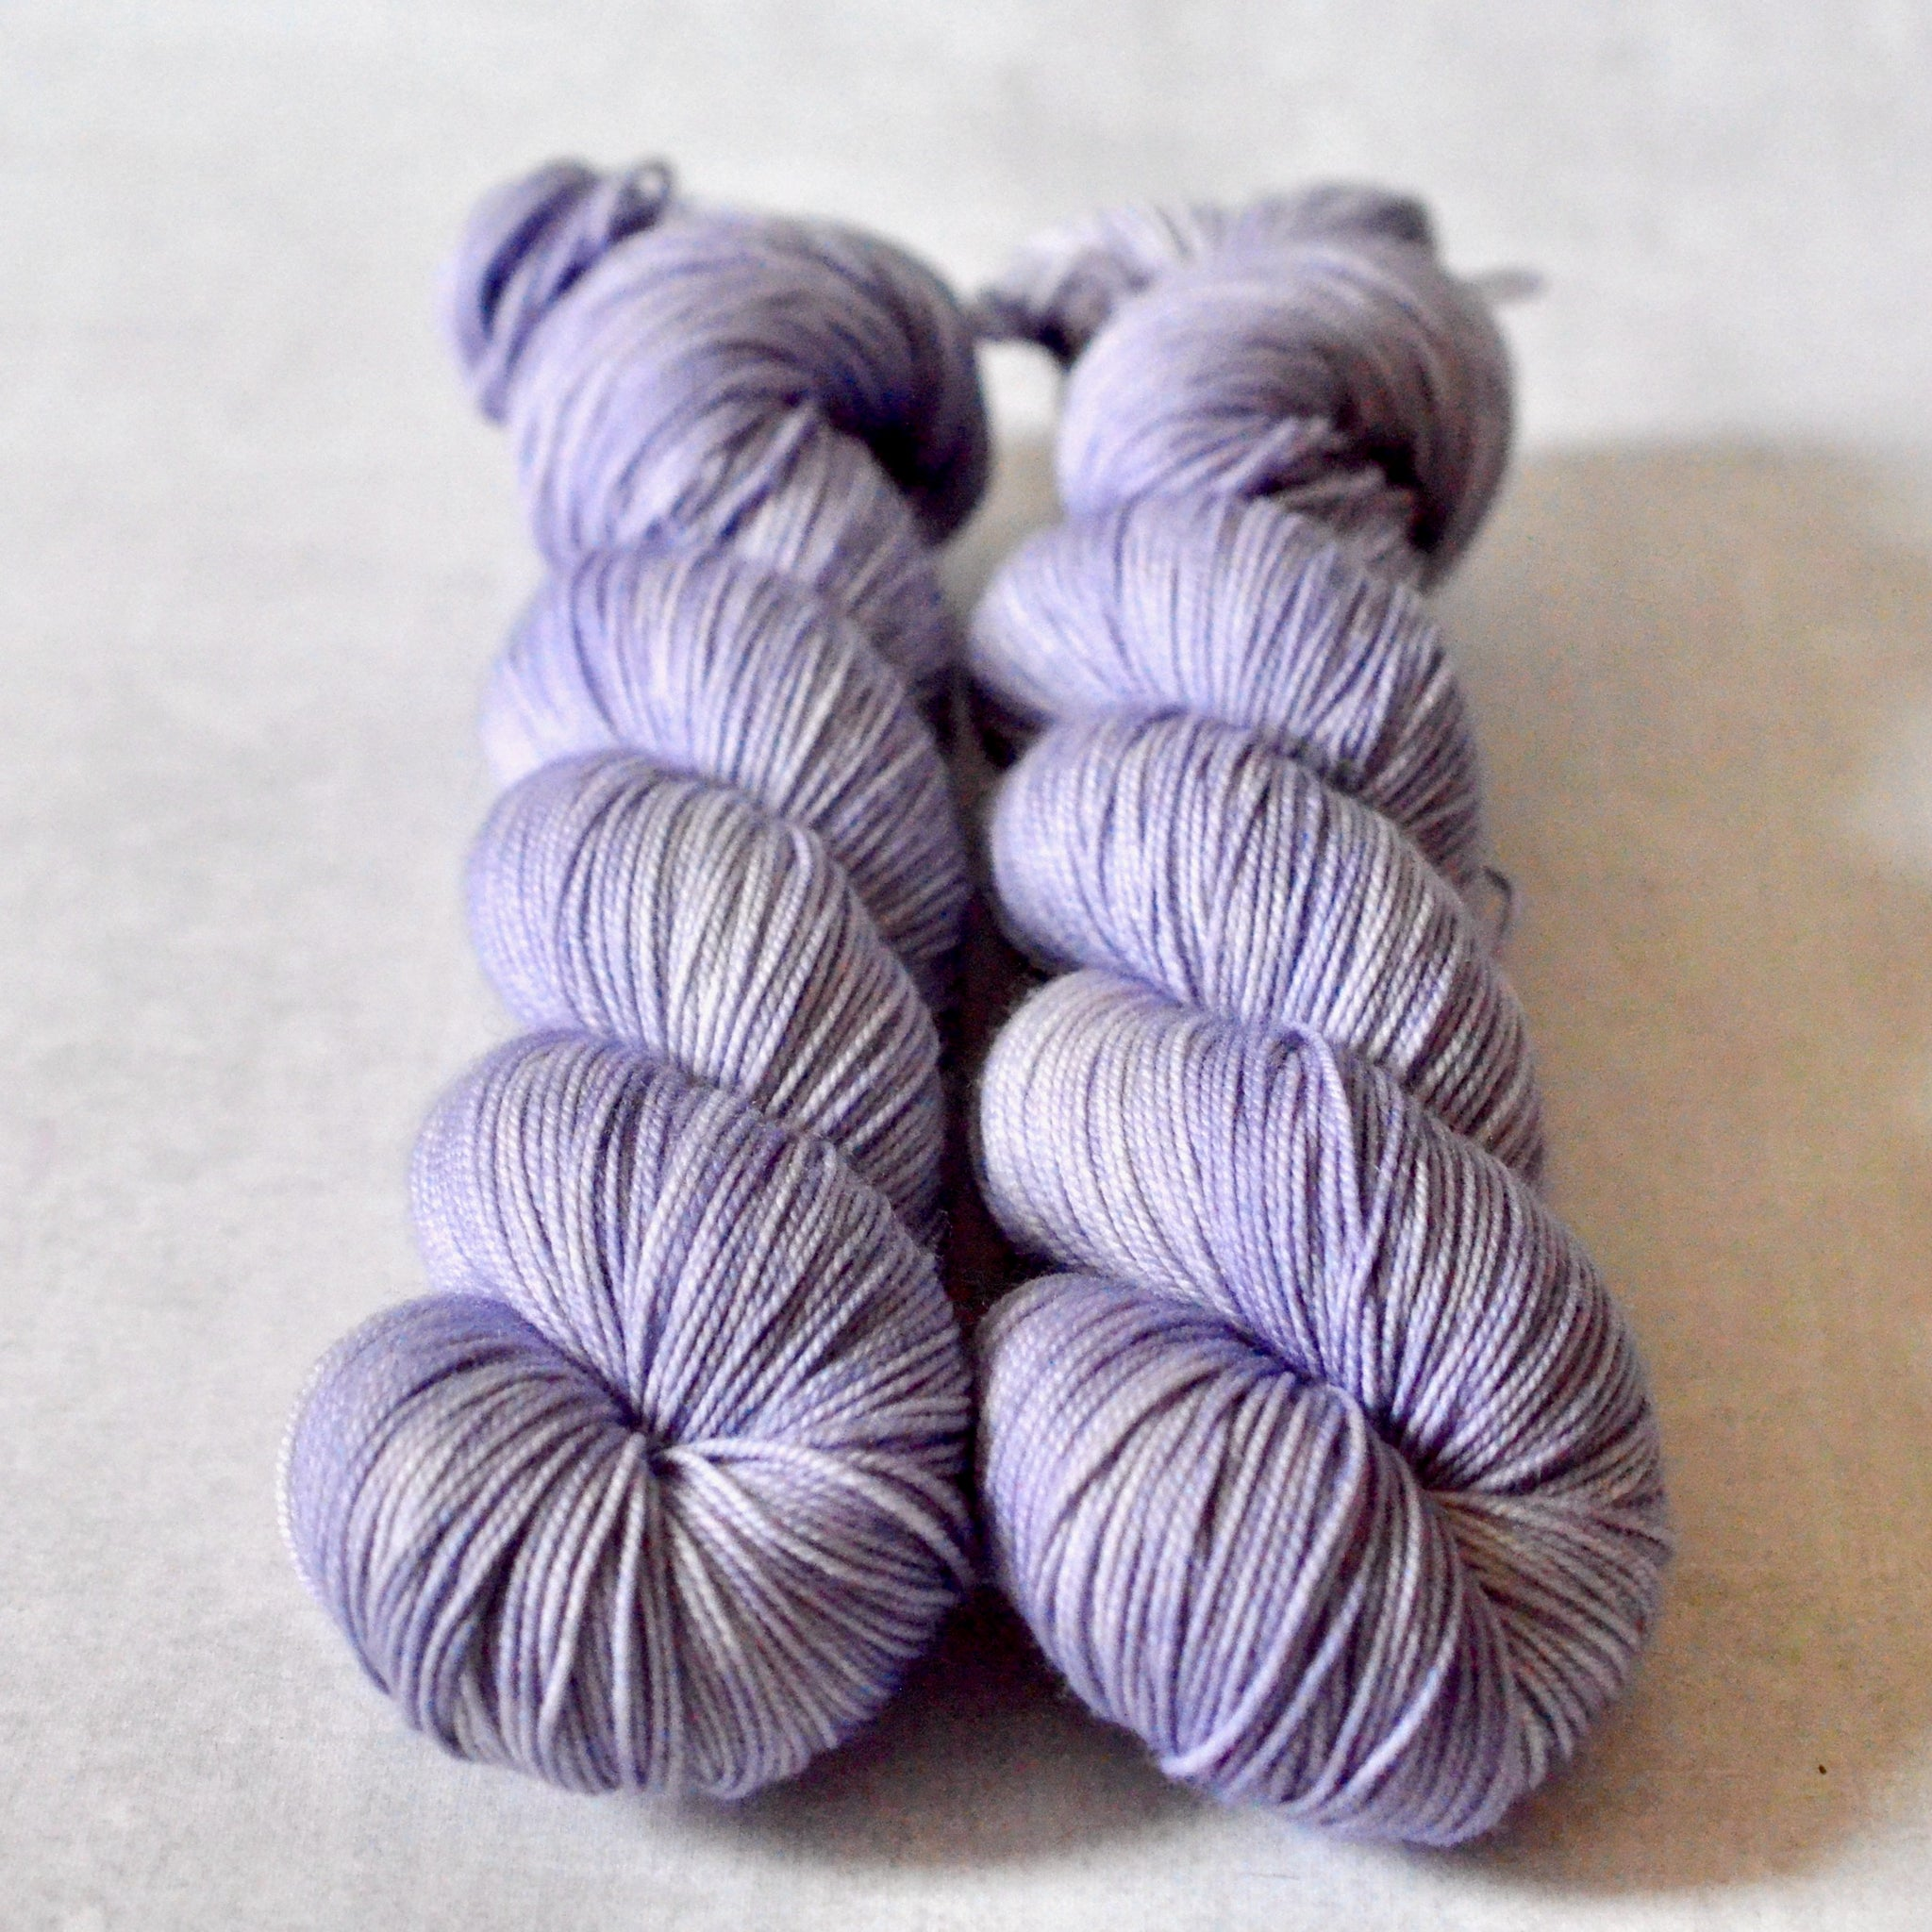 Hazy Little Thing [merino sport]